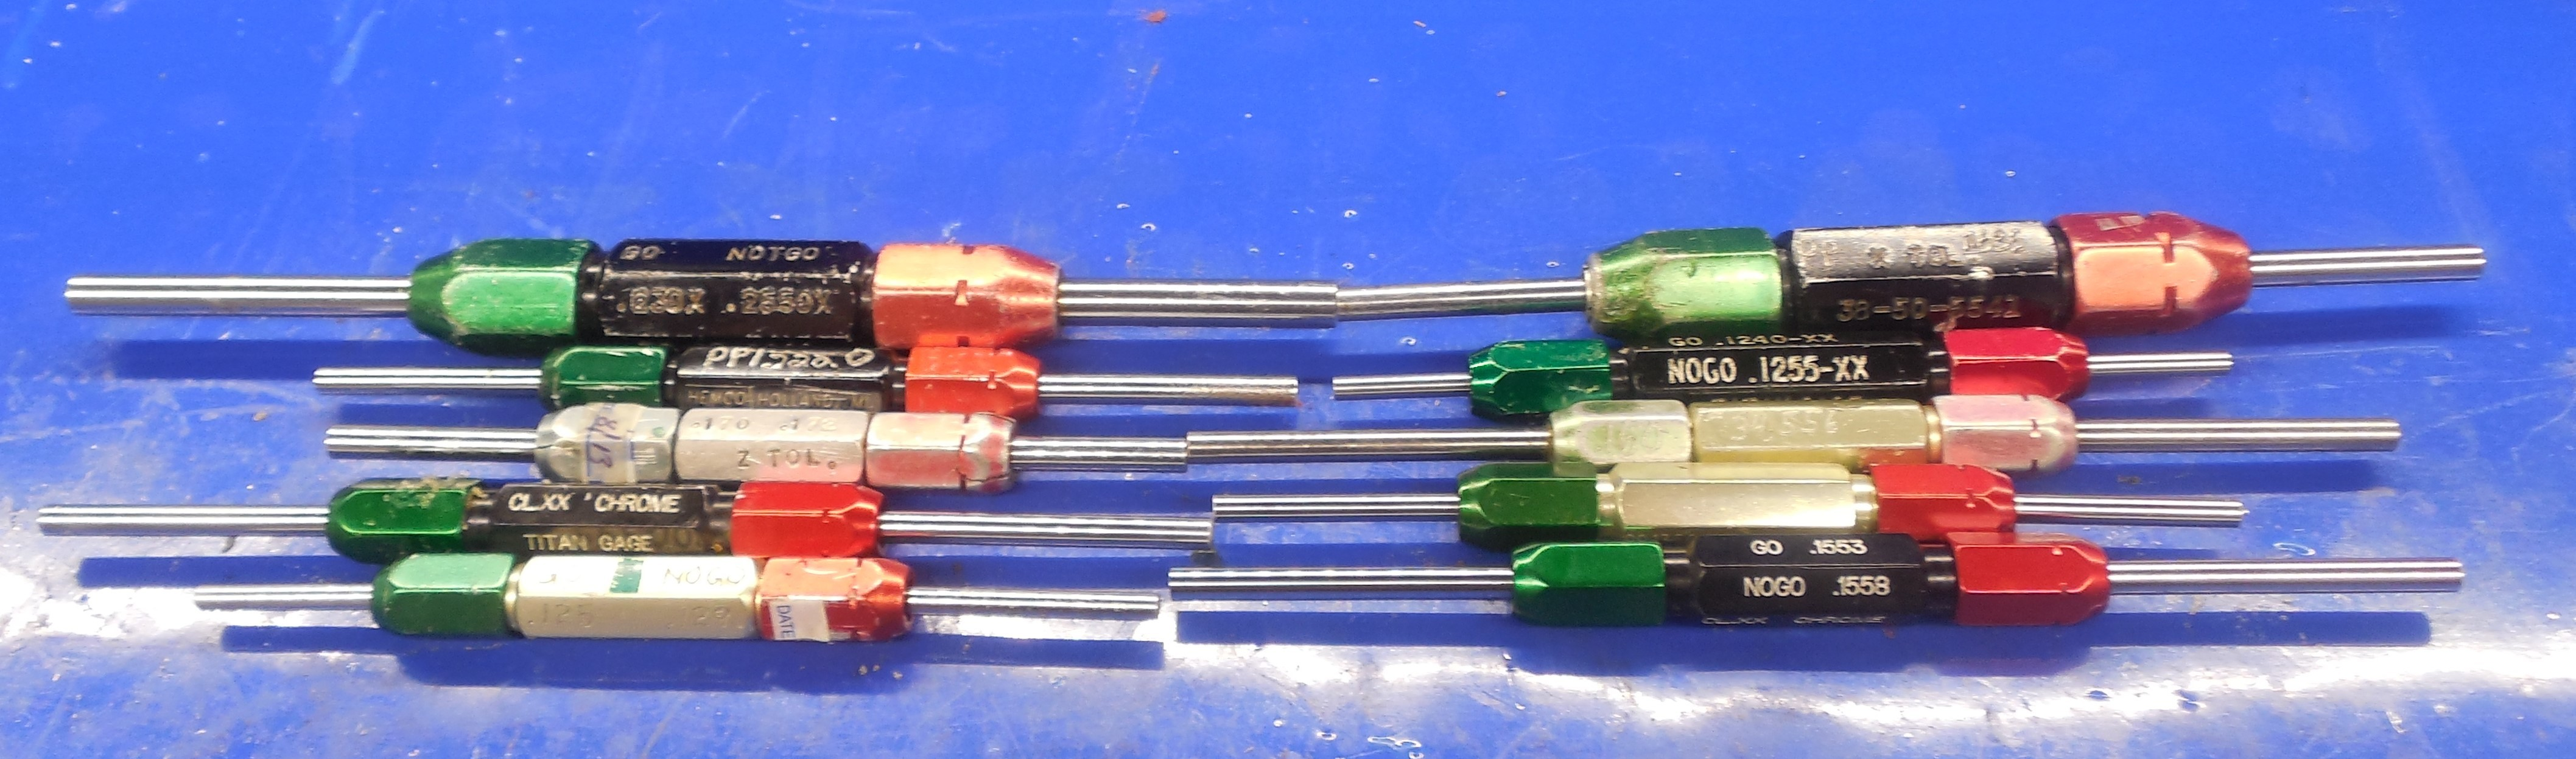 20 Pc Smooth Pin Plug Gage Lot 2500 1250 Over Under Onsize Go No Go 1 4 1 8 Ebay